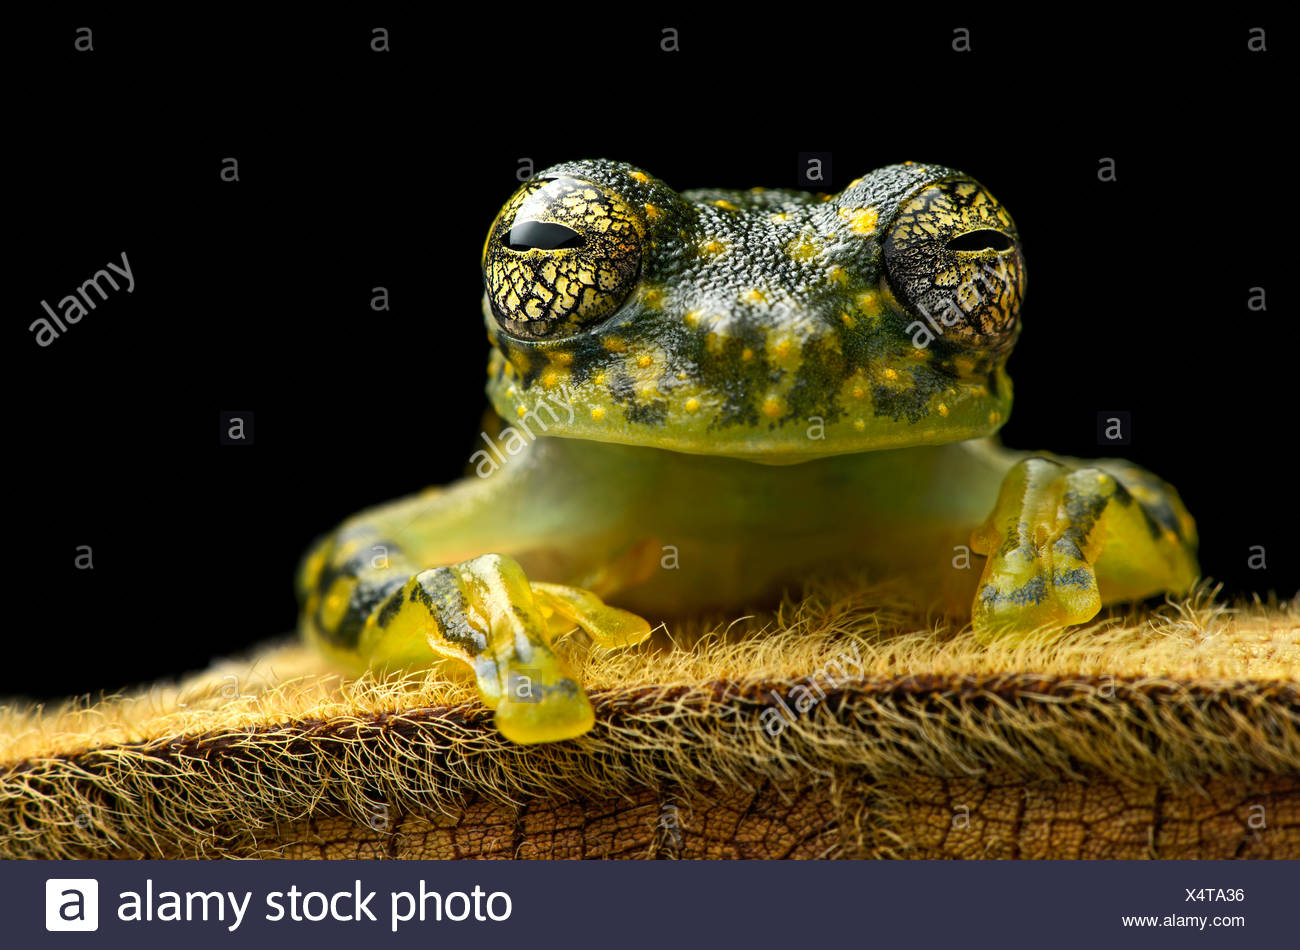 White-spotted Cochran Frog (Sachatamia albamoculata) sitting on hairy leaf, Choco rainforest, Canande River Nature Reserve Stock Photo